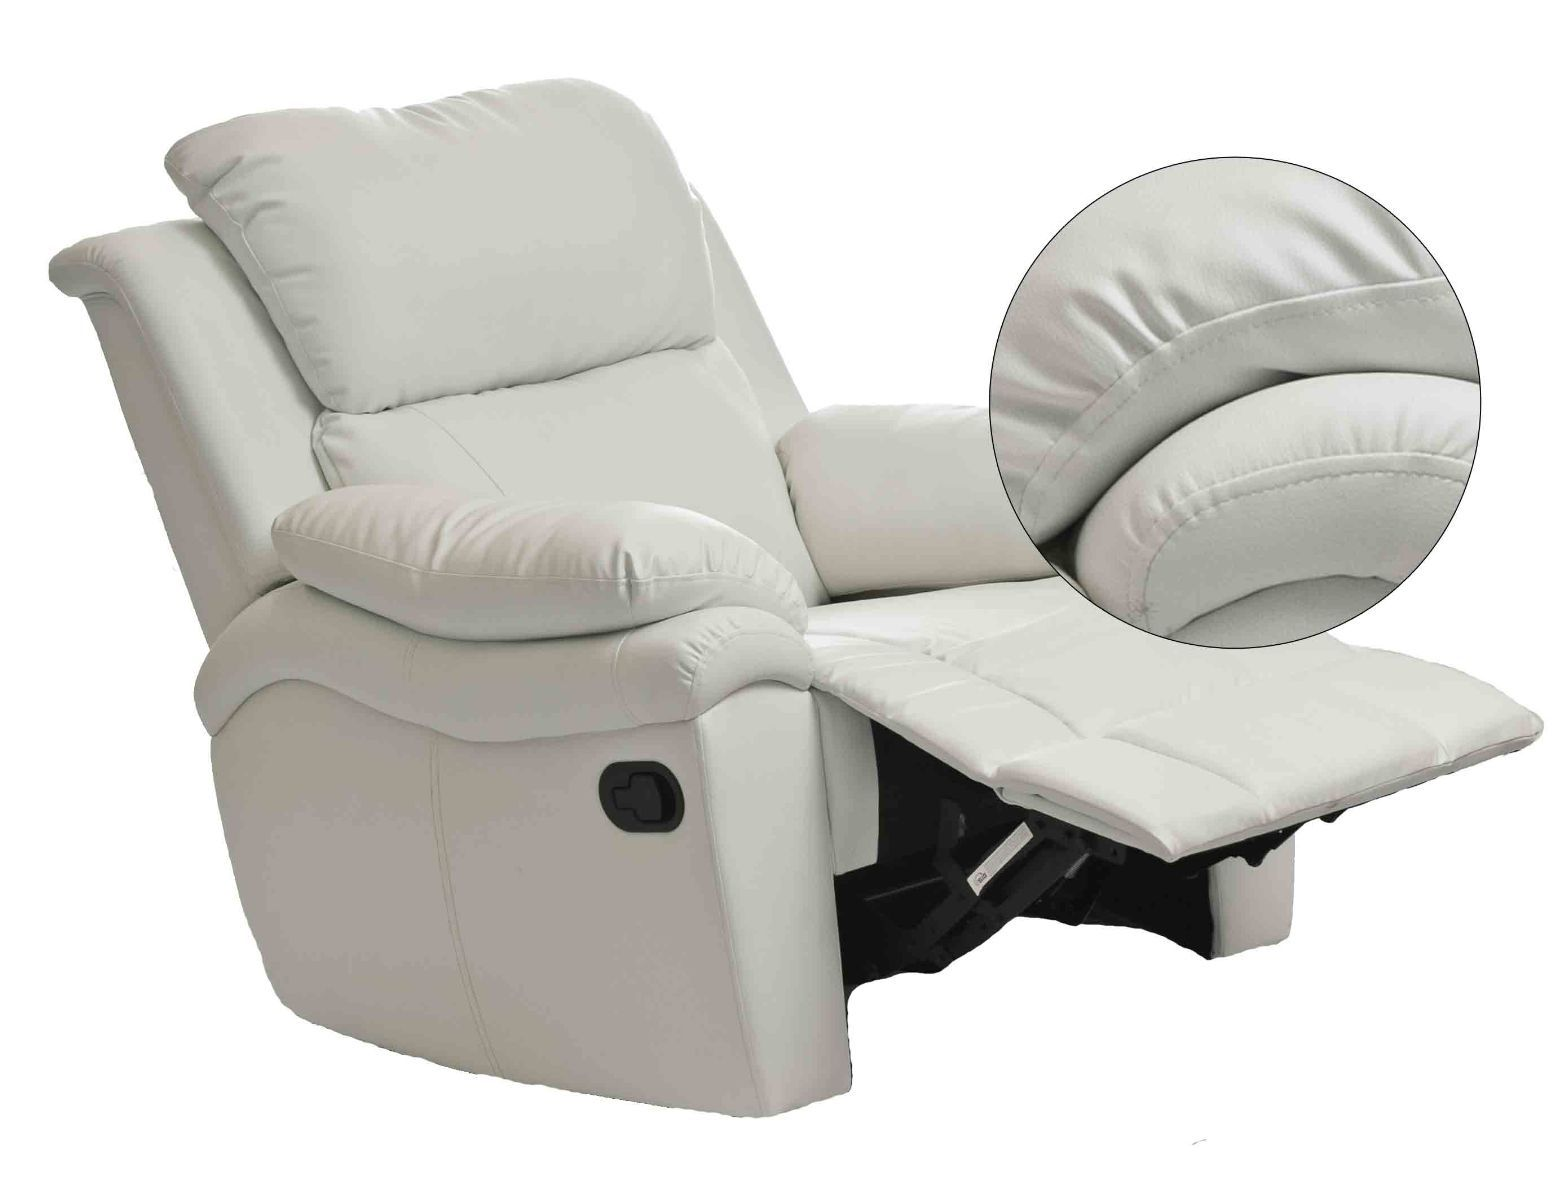 Captivating Euro Monaco Rocking Glider Chair With Footrest Beige From Baby Shop Direct